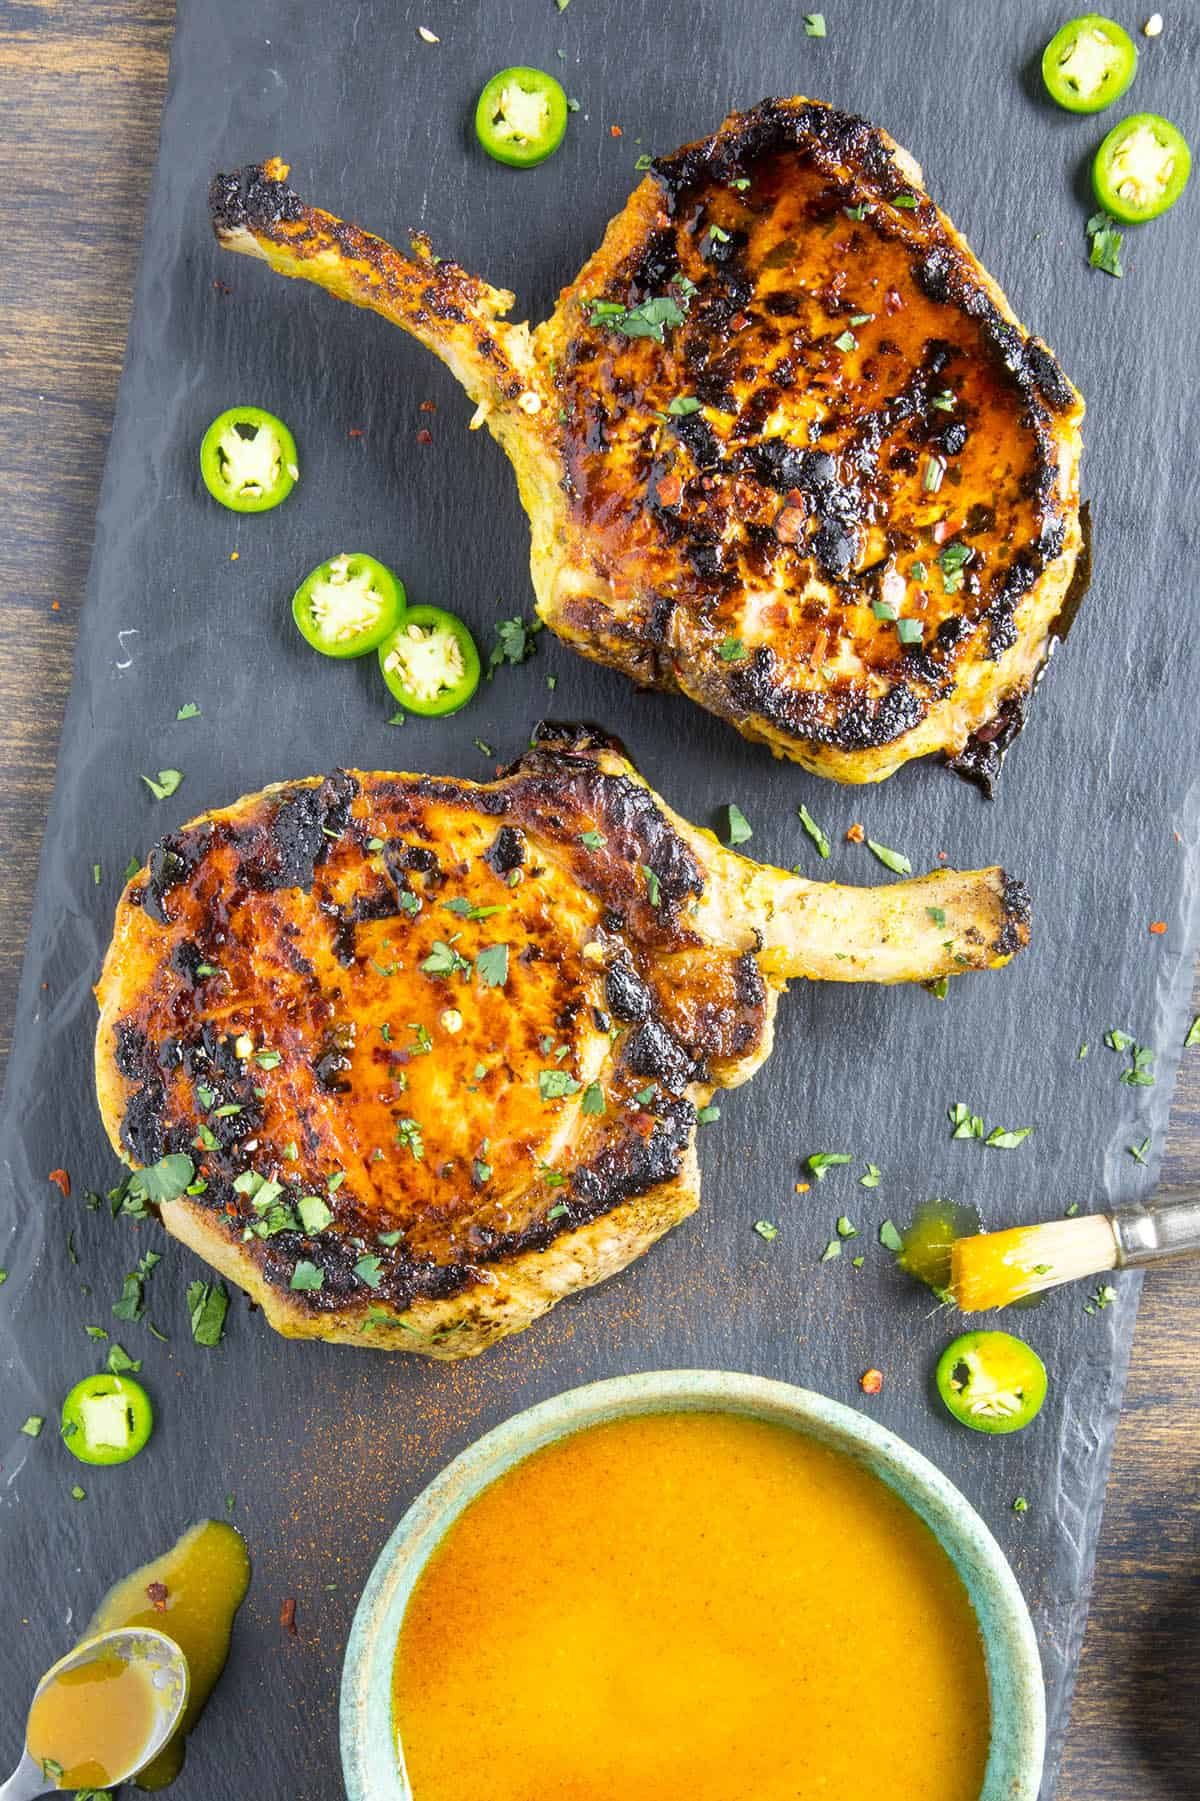 Grilled Pork Chops on a platter, ready for sauce